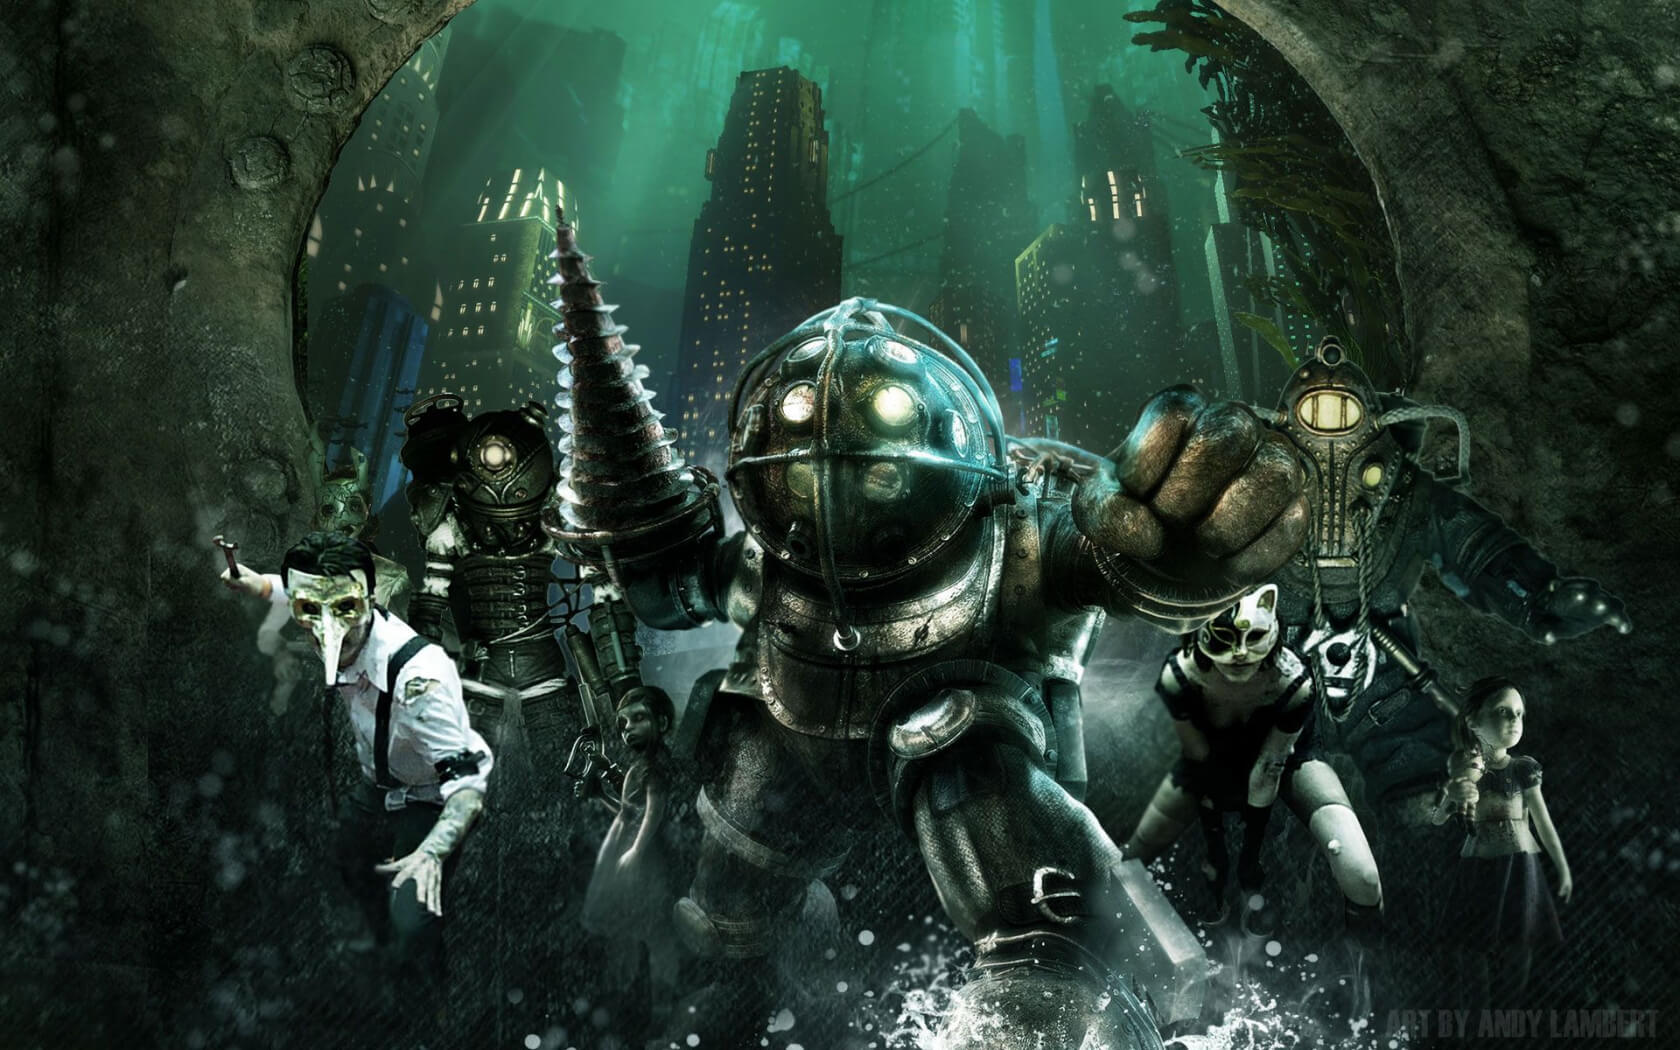 BioShock is celebrating its 10-year anniversary with a $200 collector's edition